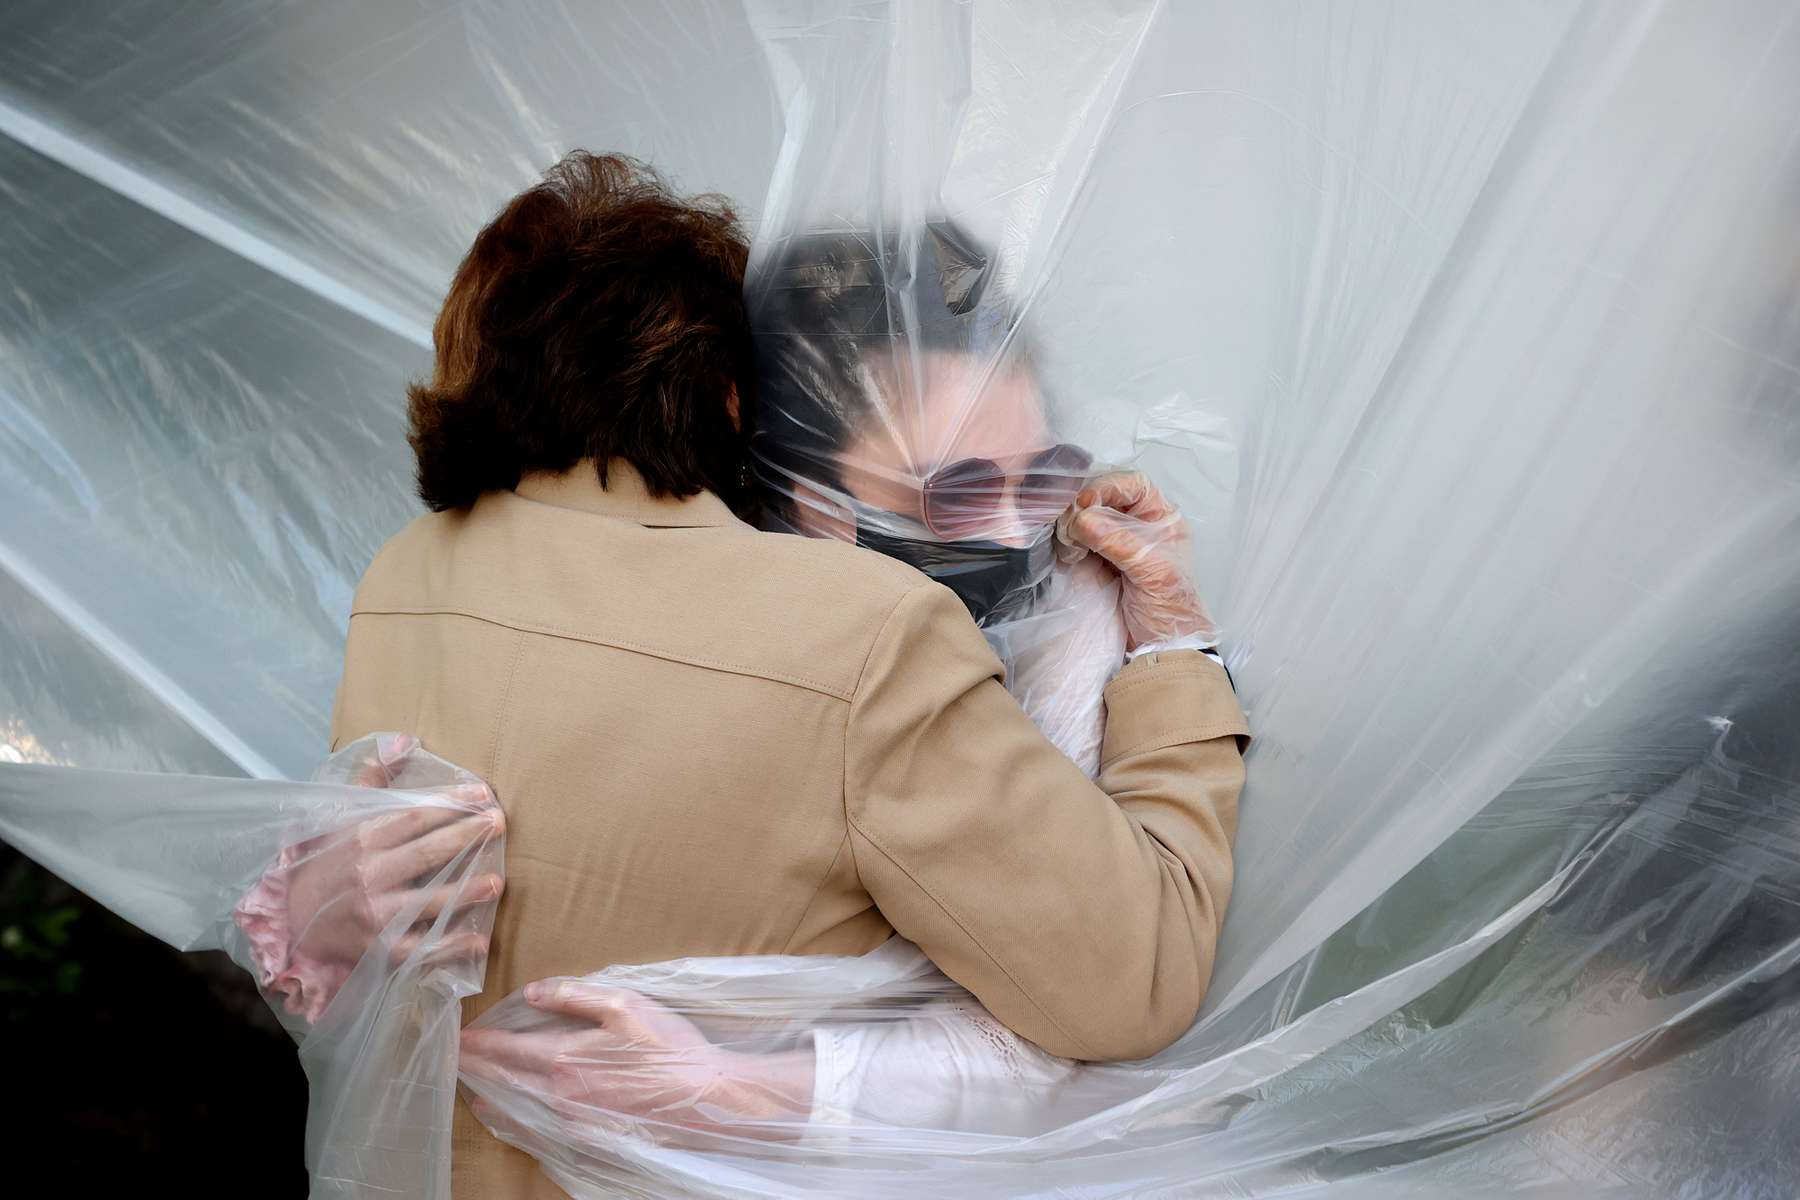 Olivia Grant hugs her Grandmother Mary Grace Sileo through a plastic drop cloth hung up on a homemade clothes line during Memorial Day Weekend on May 24, 2020 in Wantagh, New York.  It is the first time they have had contact of any kind since the coronavirus COVID-19 pandemic lockdown started in late February.